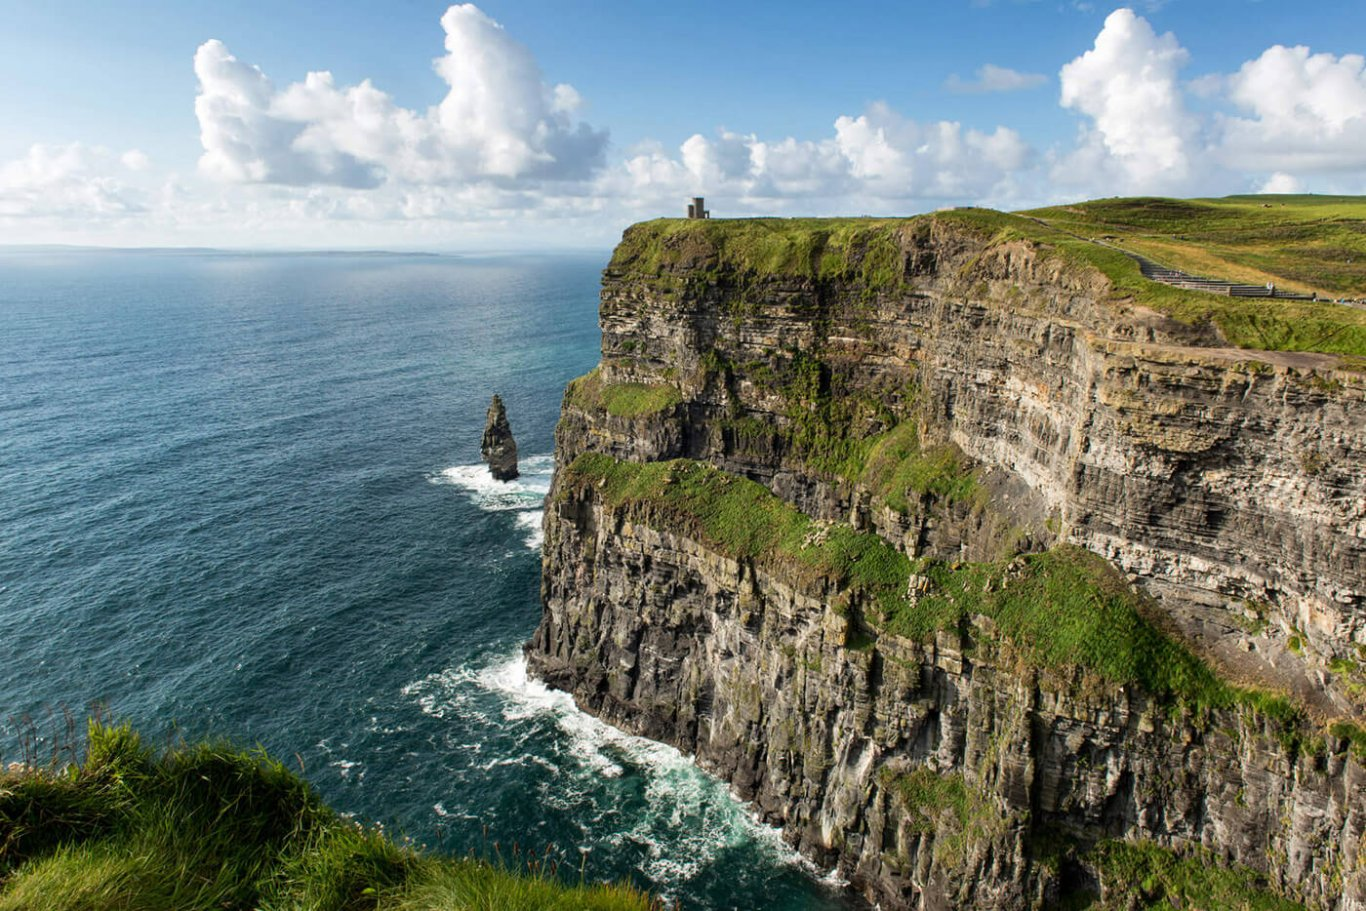 The world famous cliffs of moher